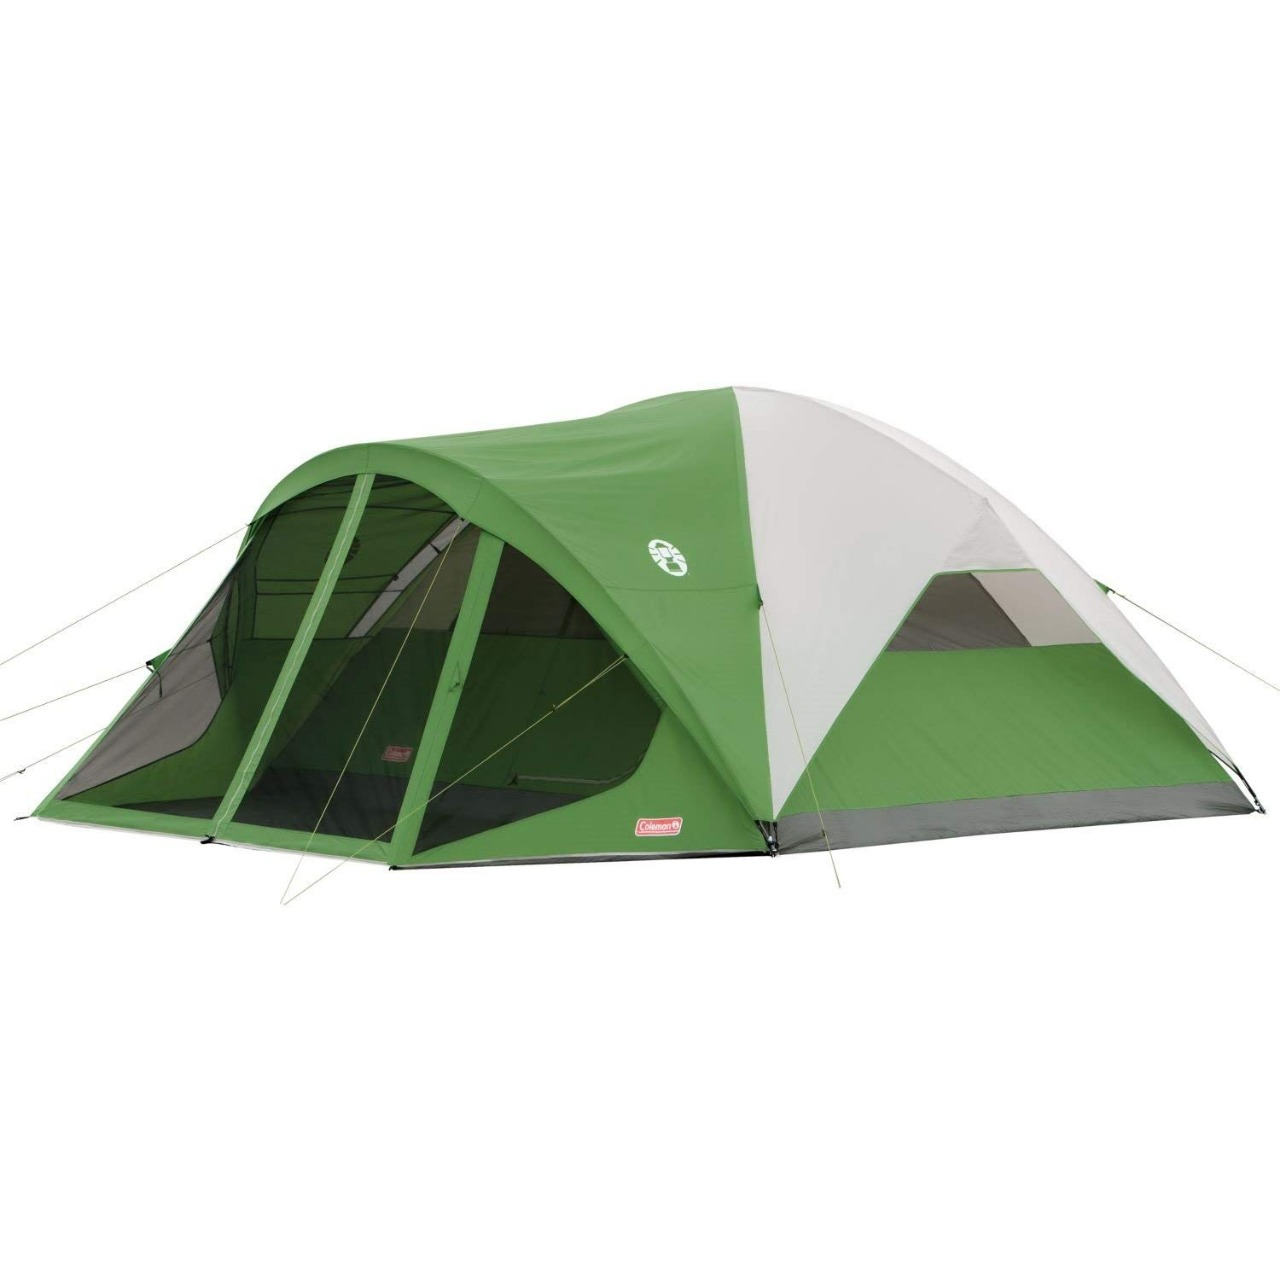 best waterproof tent for camping